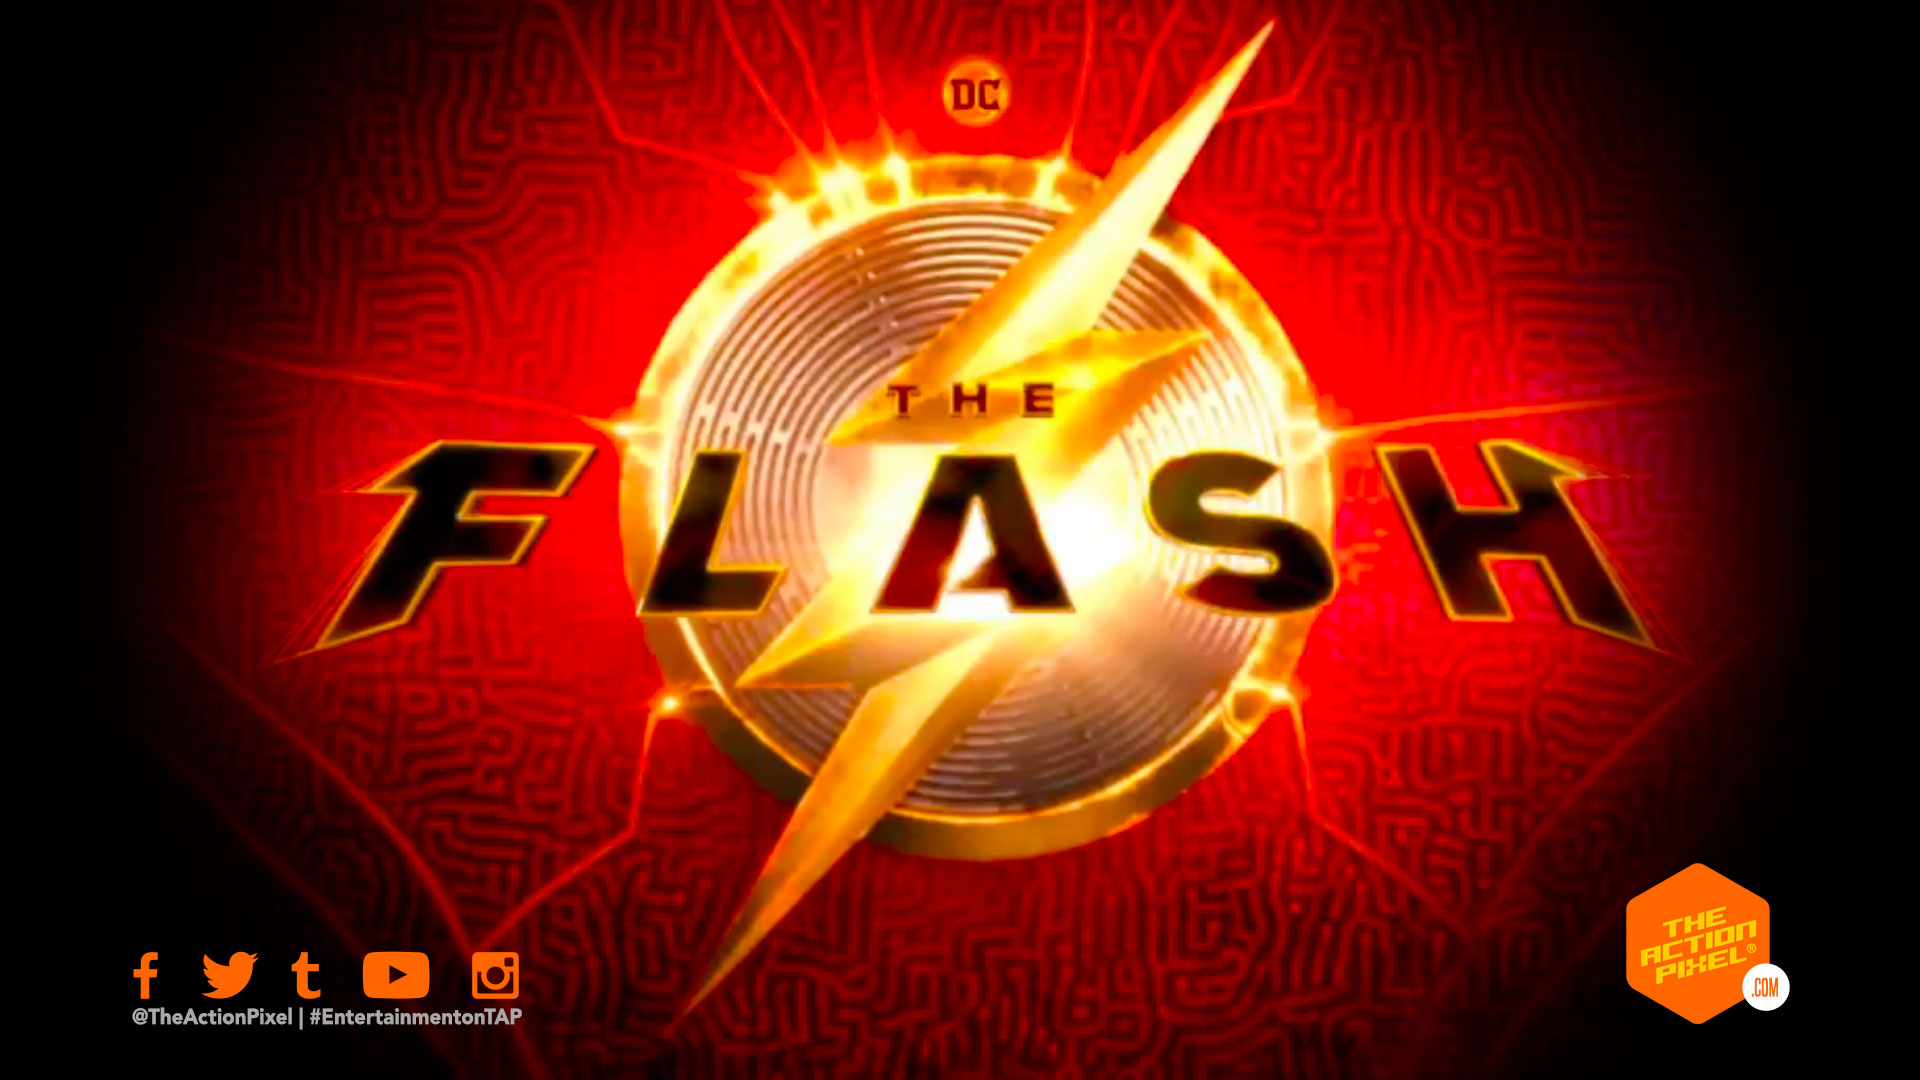 the flash logo, the flash , andy muschietti, the flash,batman, entertainment on tap, the action pixel, the flash movie, dc comics, wb pictures, warner bros. pictures, featured,